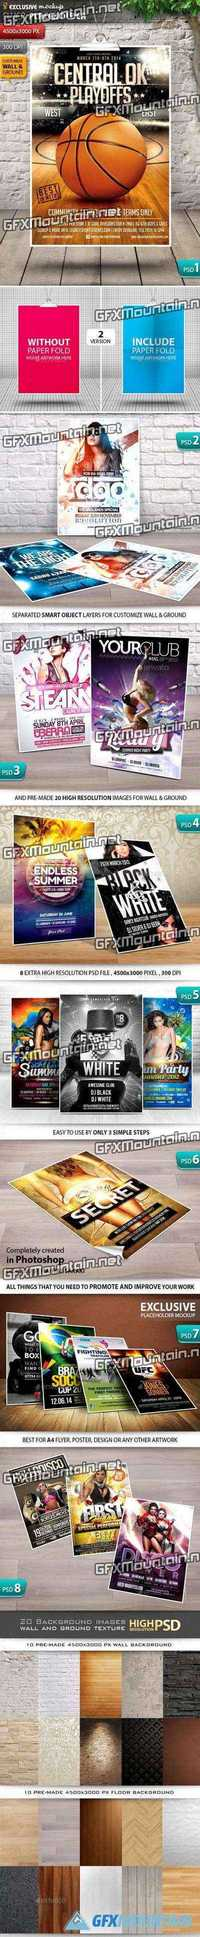 Graphicriver Exclusive A4 Flyer & Poster Mockup V1.0 11902769